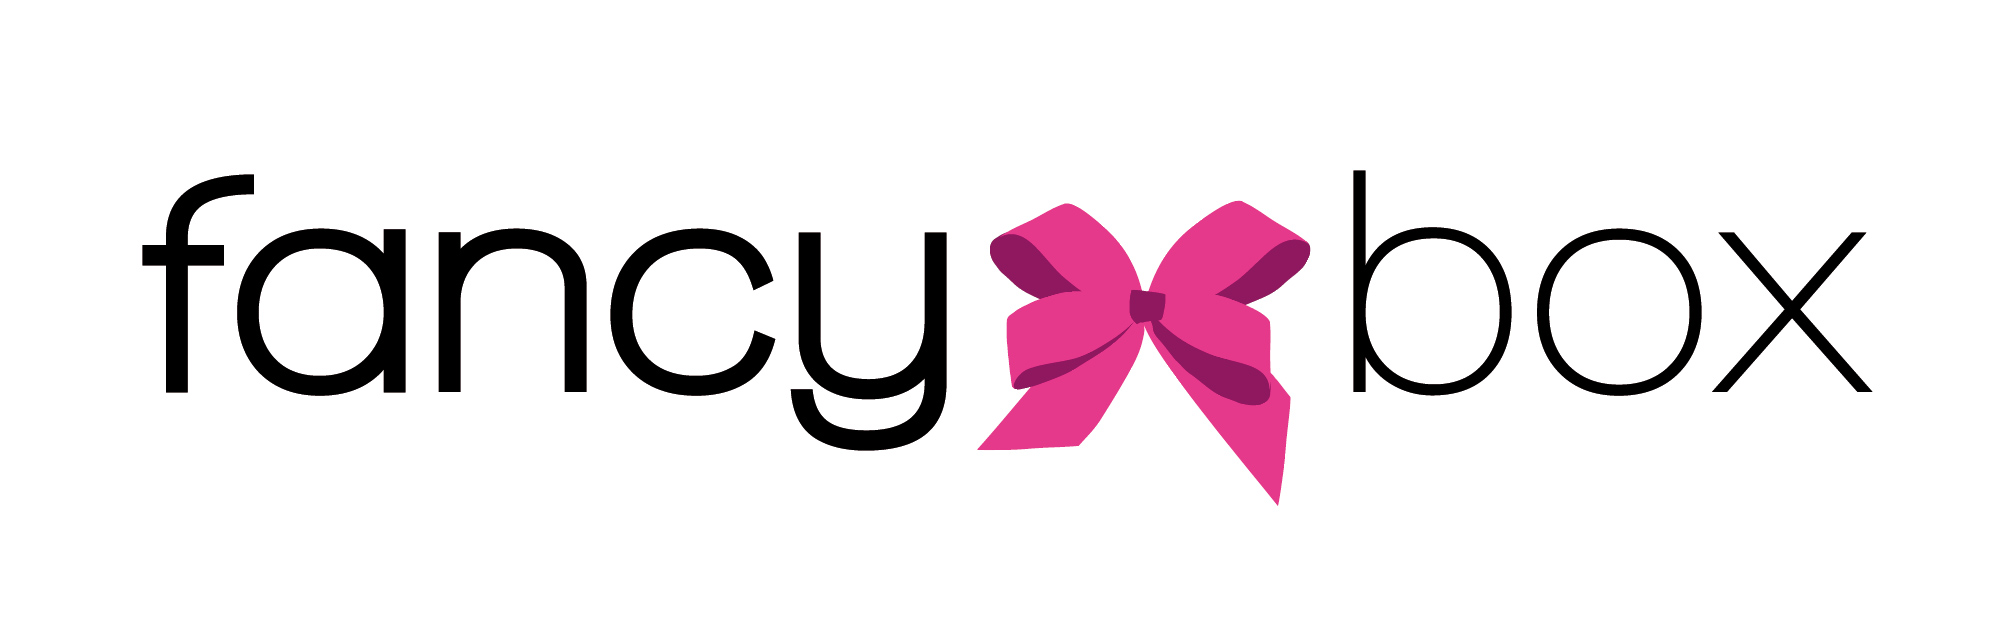 20120510_FANCY-BOX-logo-positivo